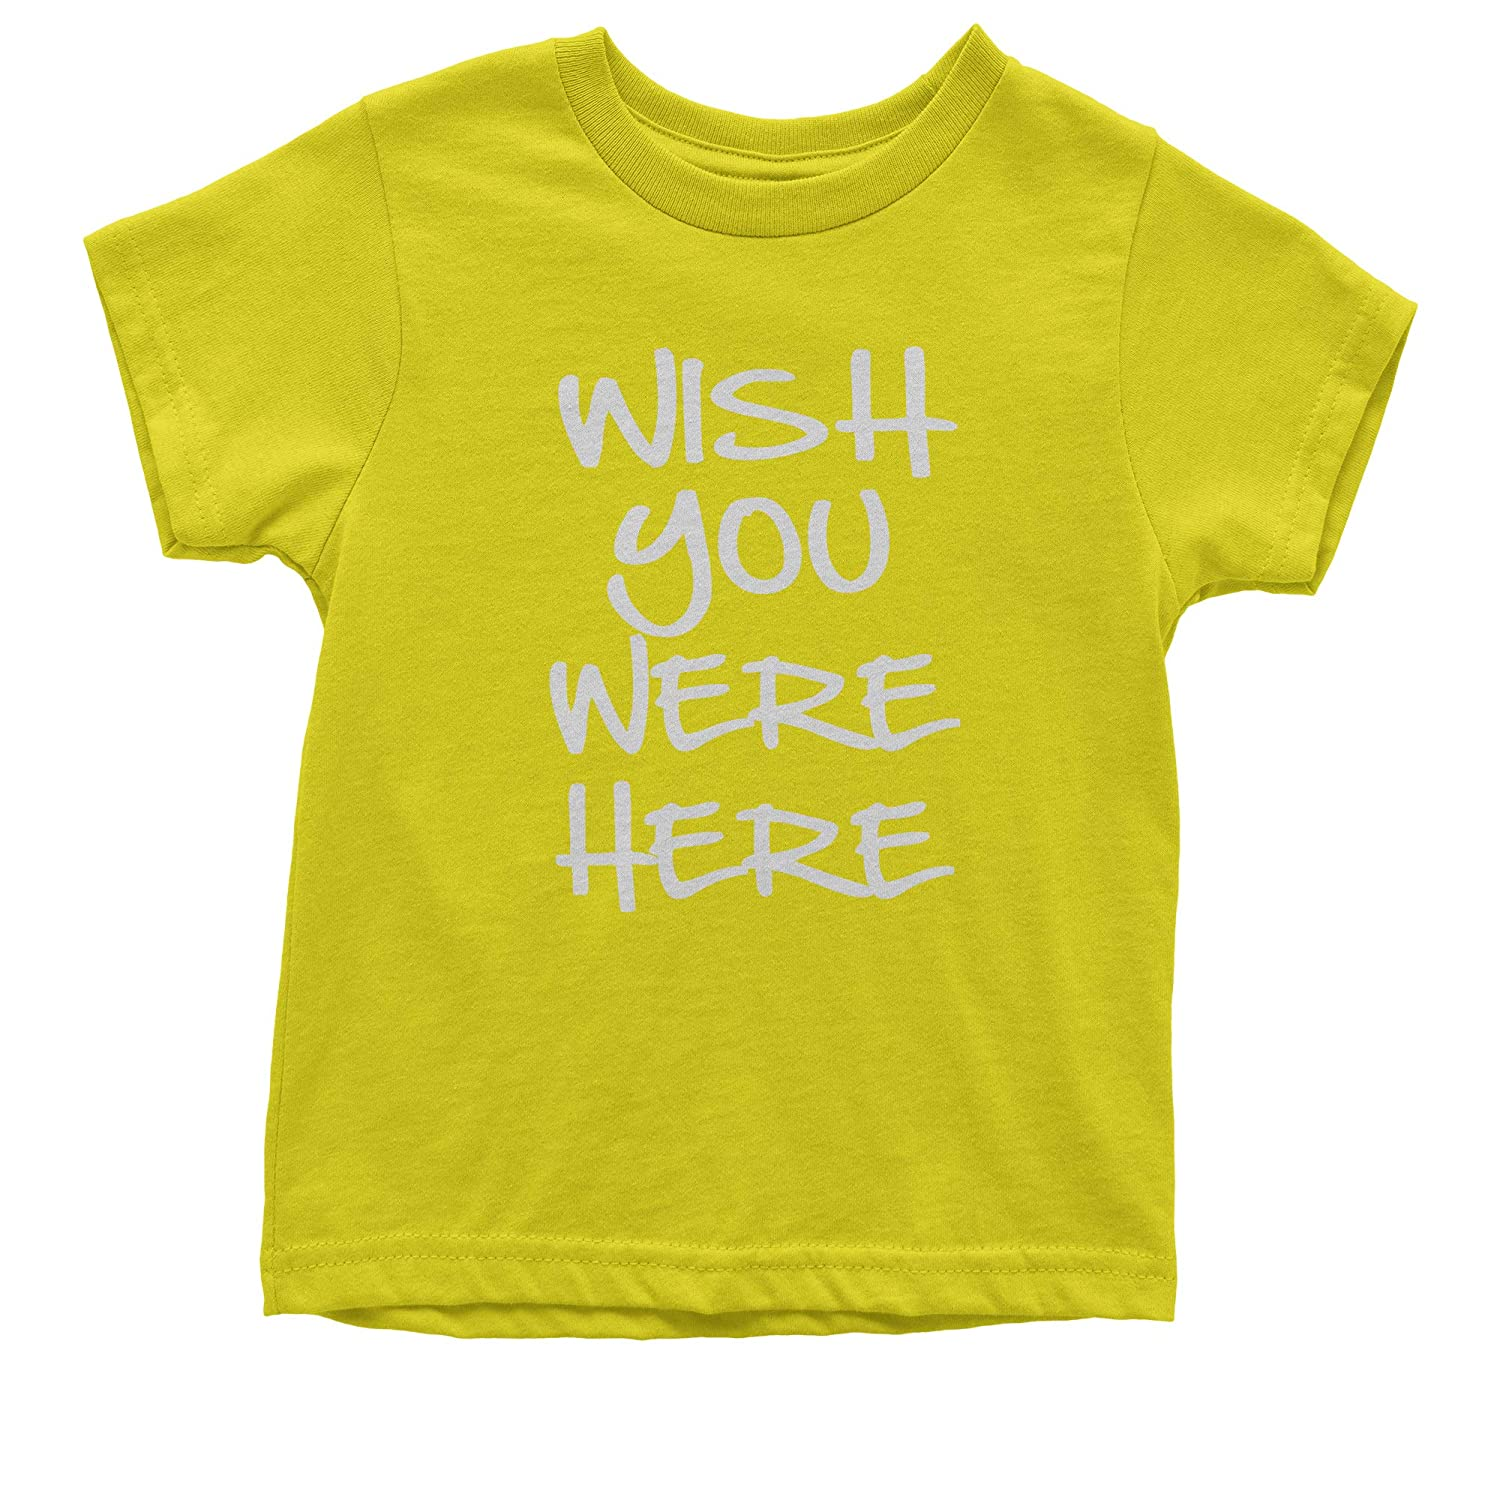 Expression Tees Wish You were Here Youth T-Shirt